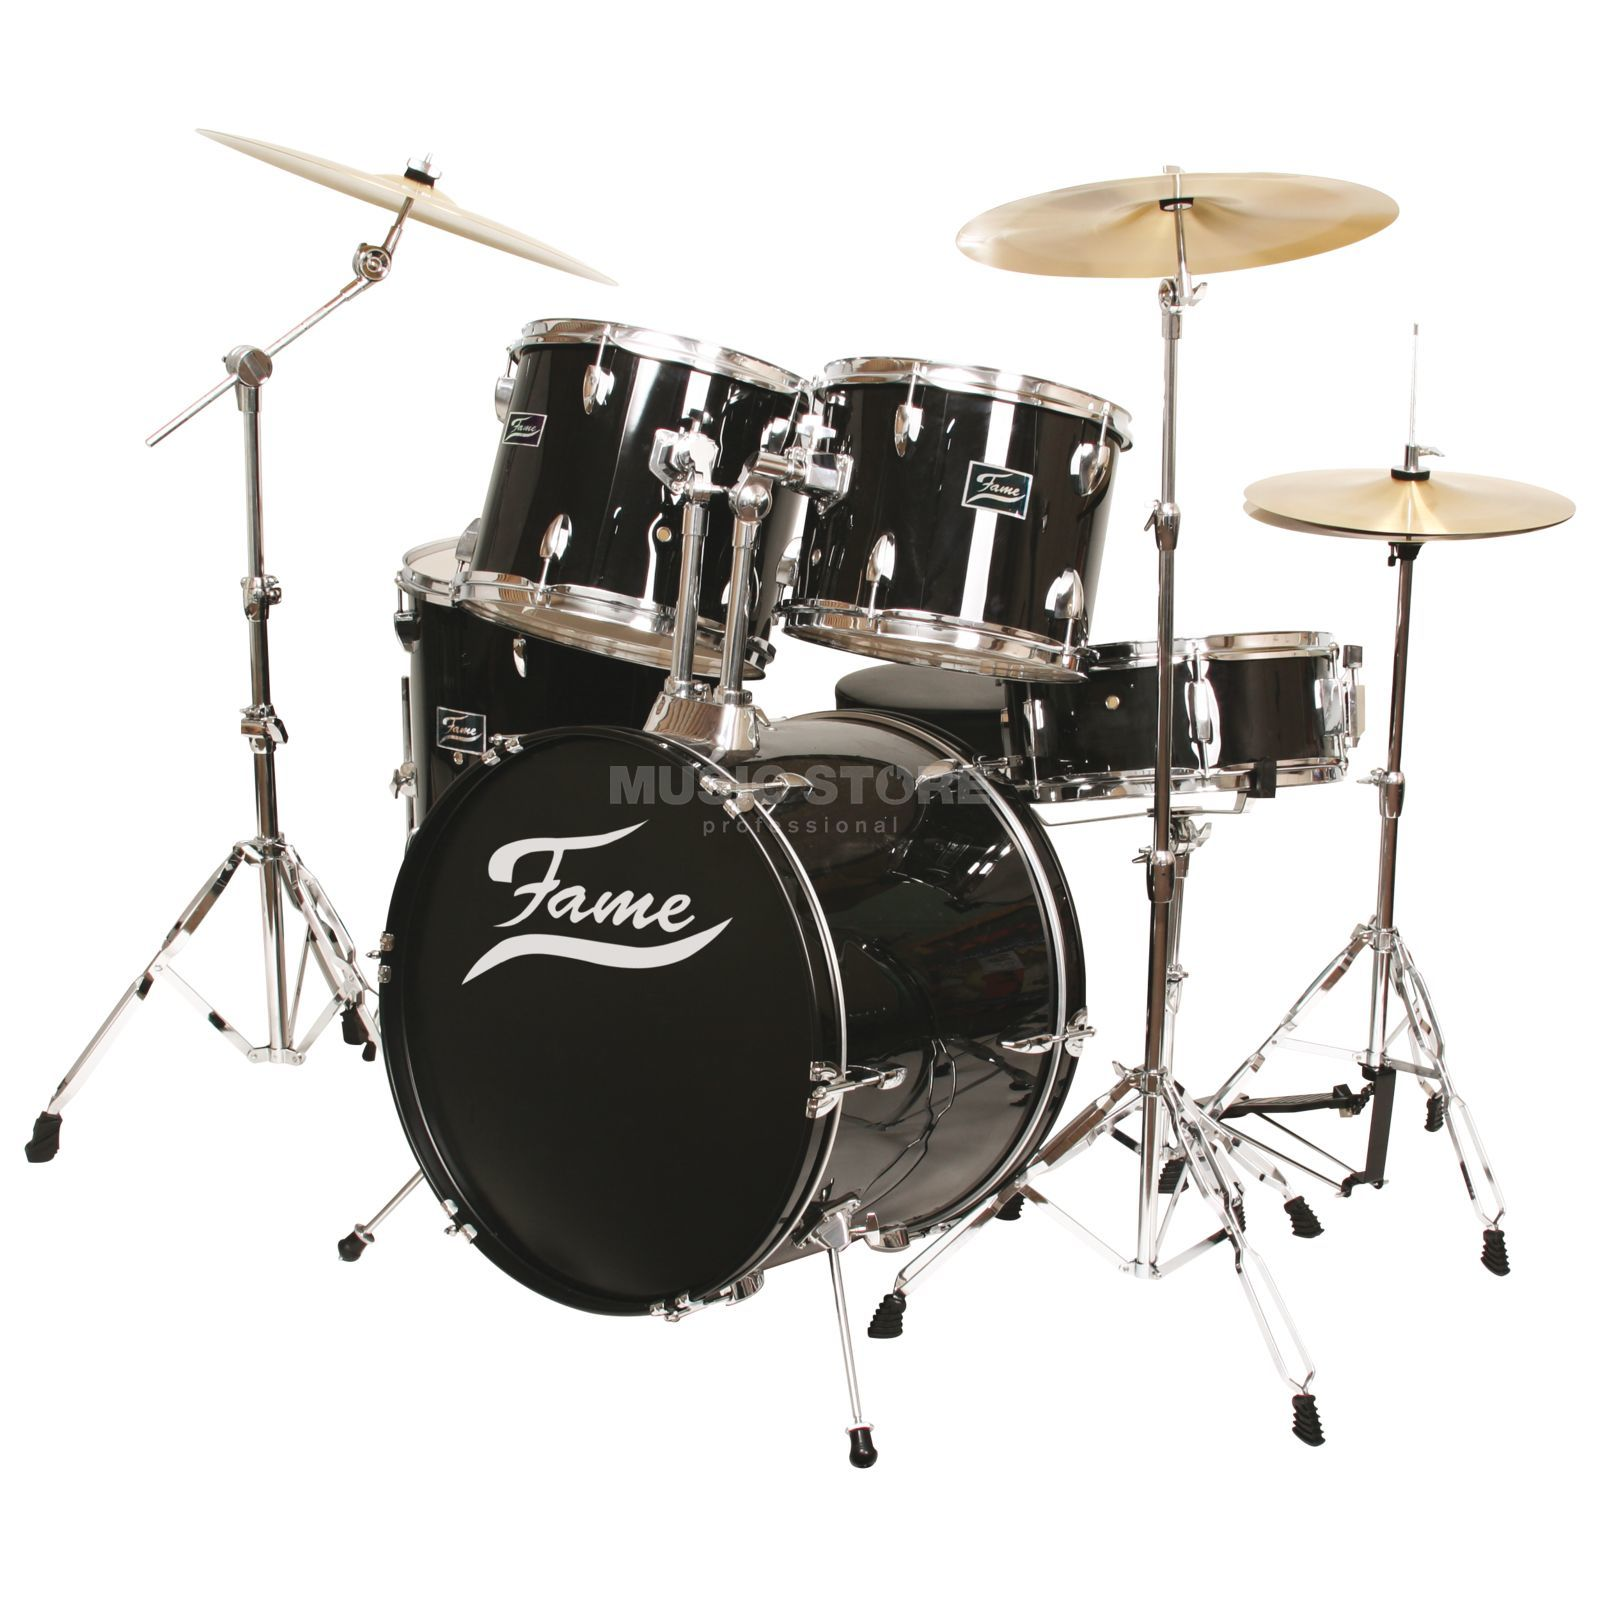 Fame Beginner Deluxe Set 5221, Black Produktbild